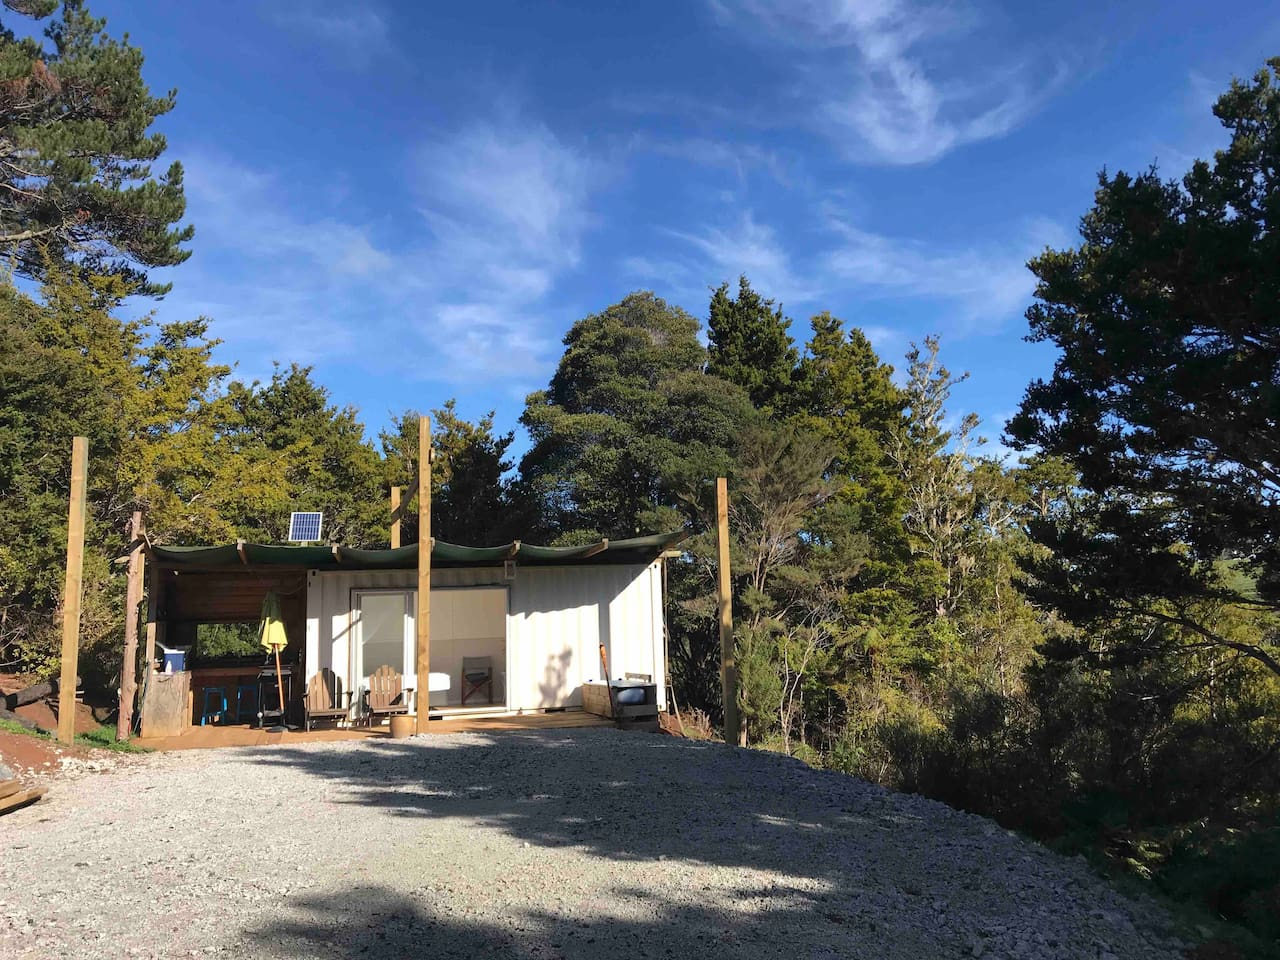 Off the grid shipping Container. Perfect retreat in Nature with outdoor bath and inside bathroom. Nestled in 35 acres of native forest with wild kiwi and morepork along with many other natives.